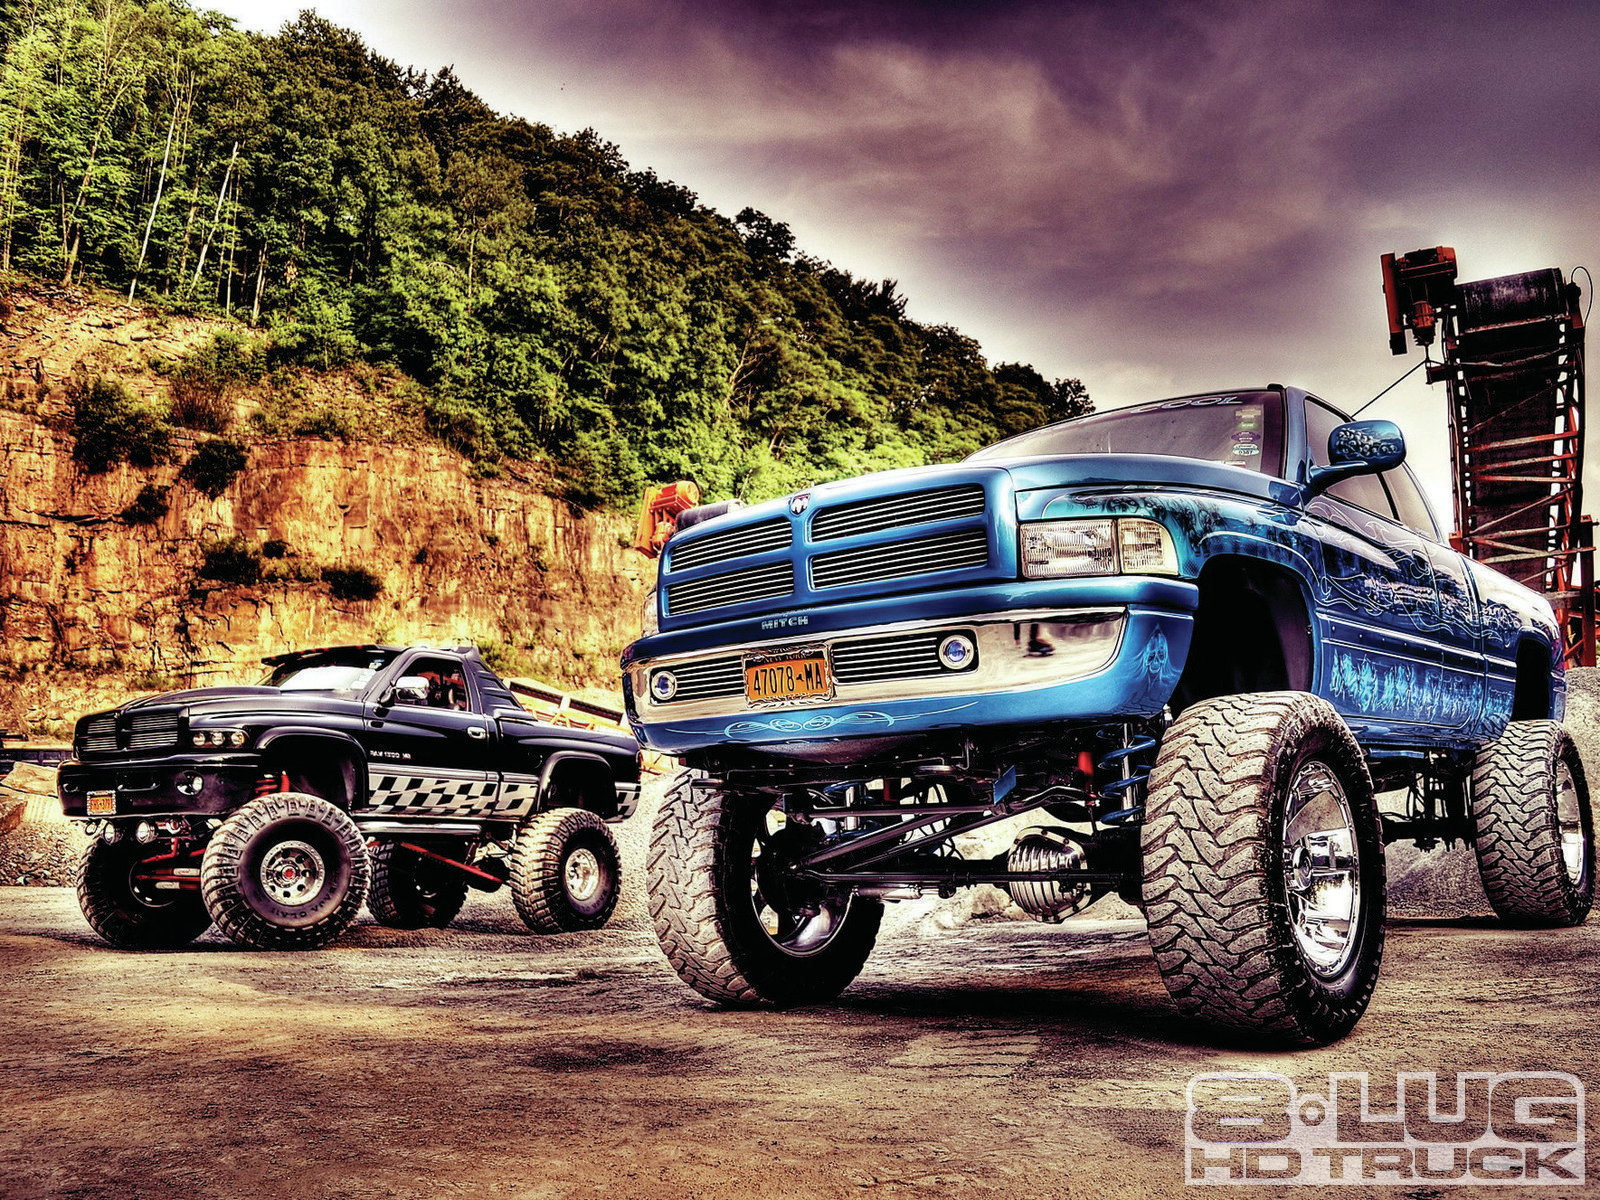 Big Ford Mud Trucks  New Car: big lifted ford trucks wallpaper 1600x1200